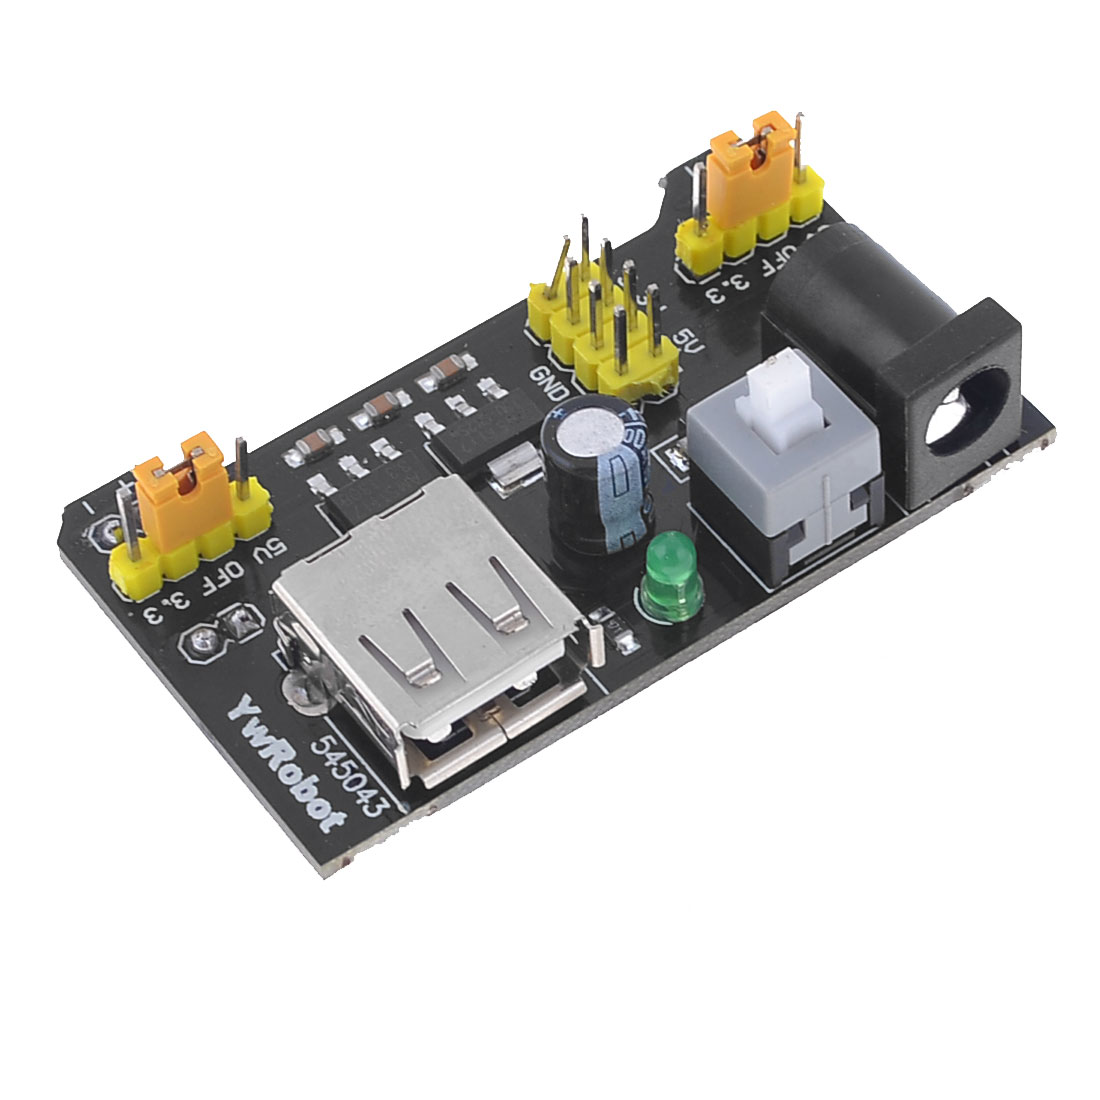 3.3V/5V Power Supply Module for MB102 Breadboard Black